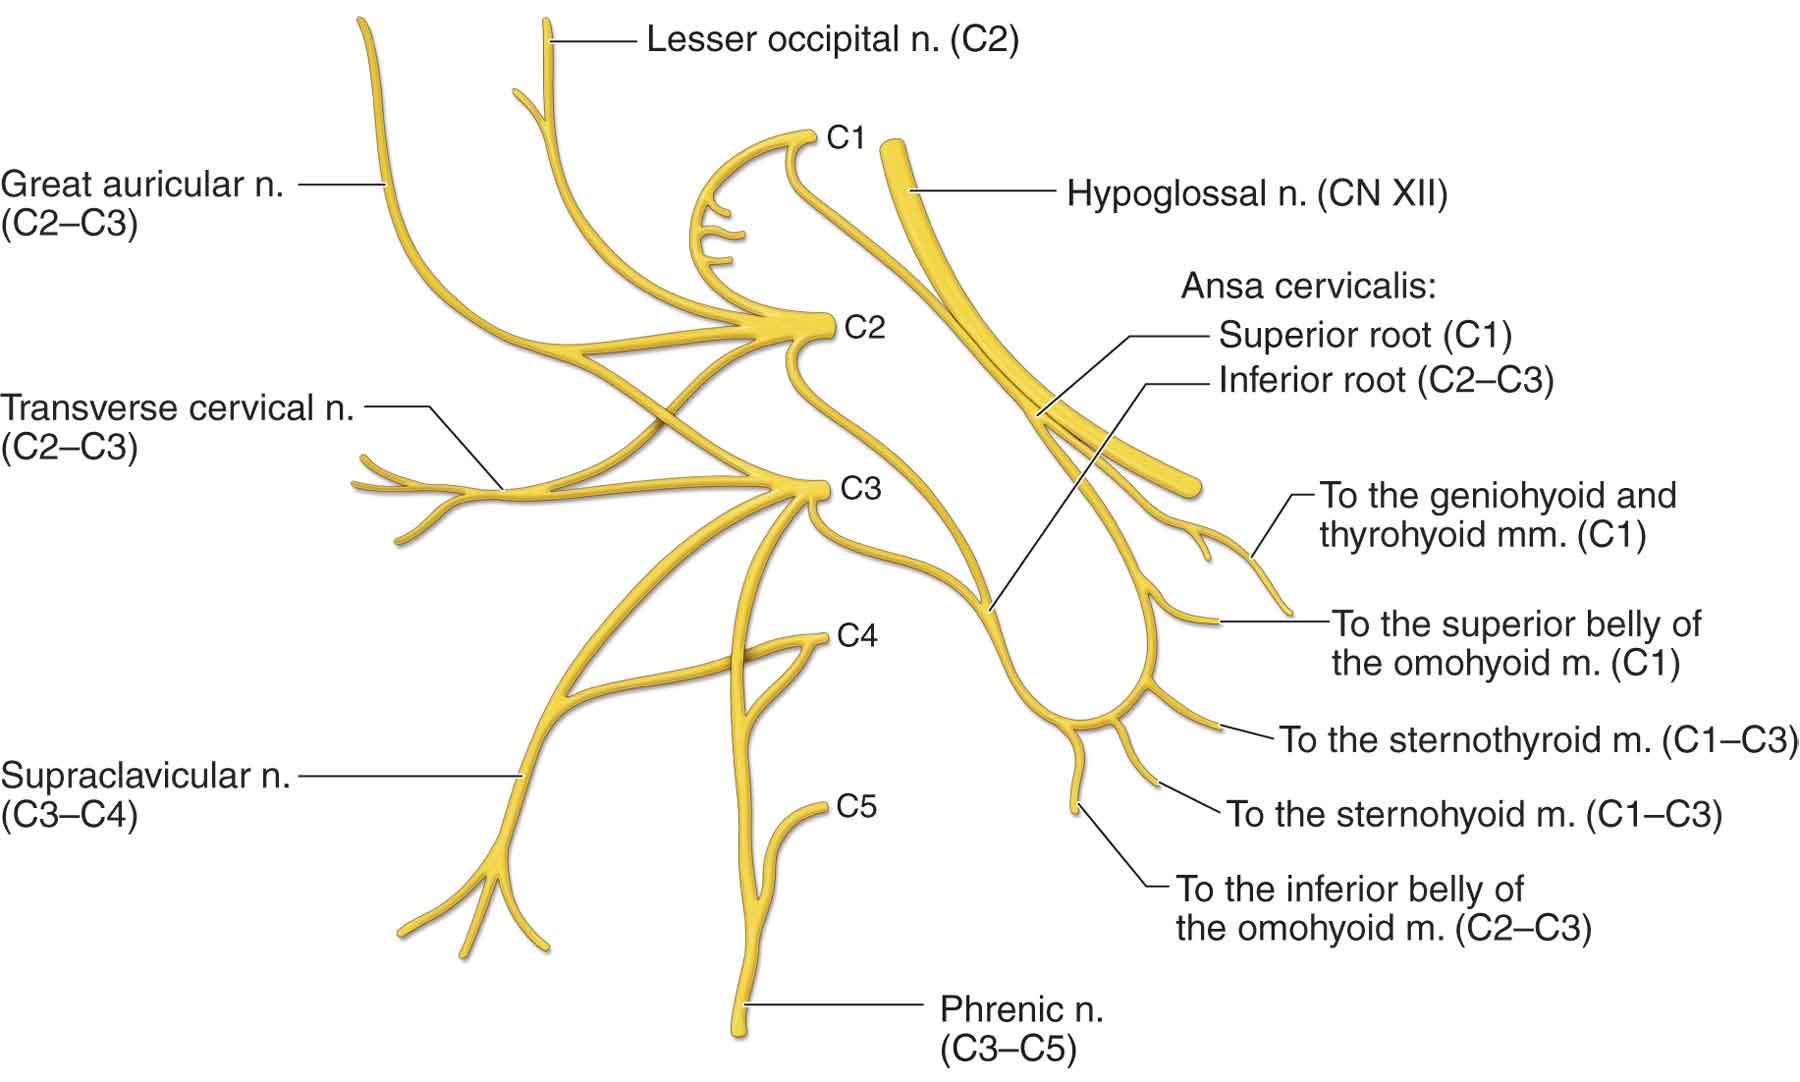 The Nervous System | Musculoskeletal Key